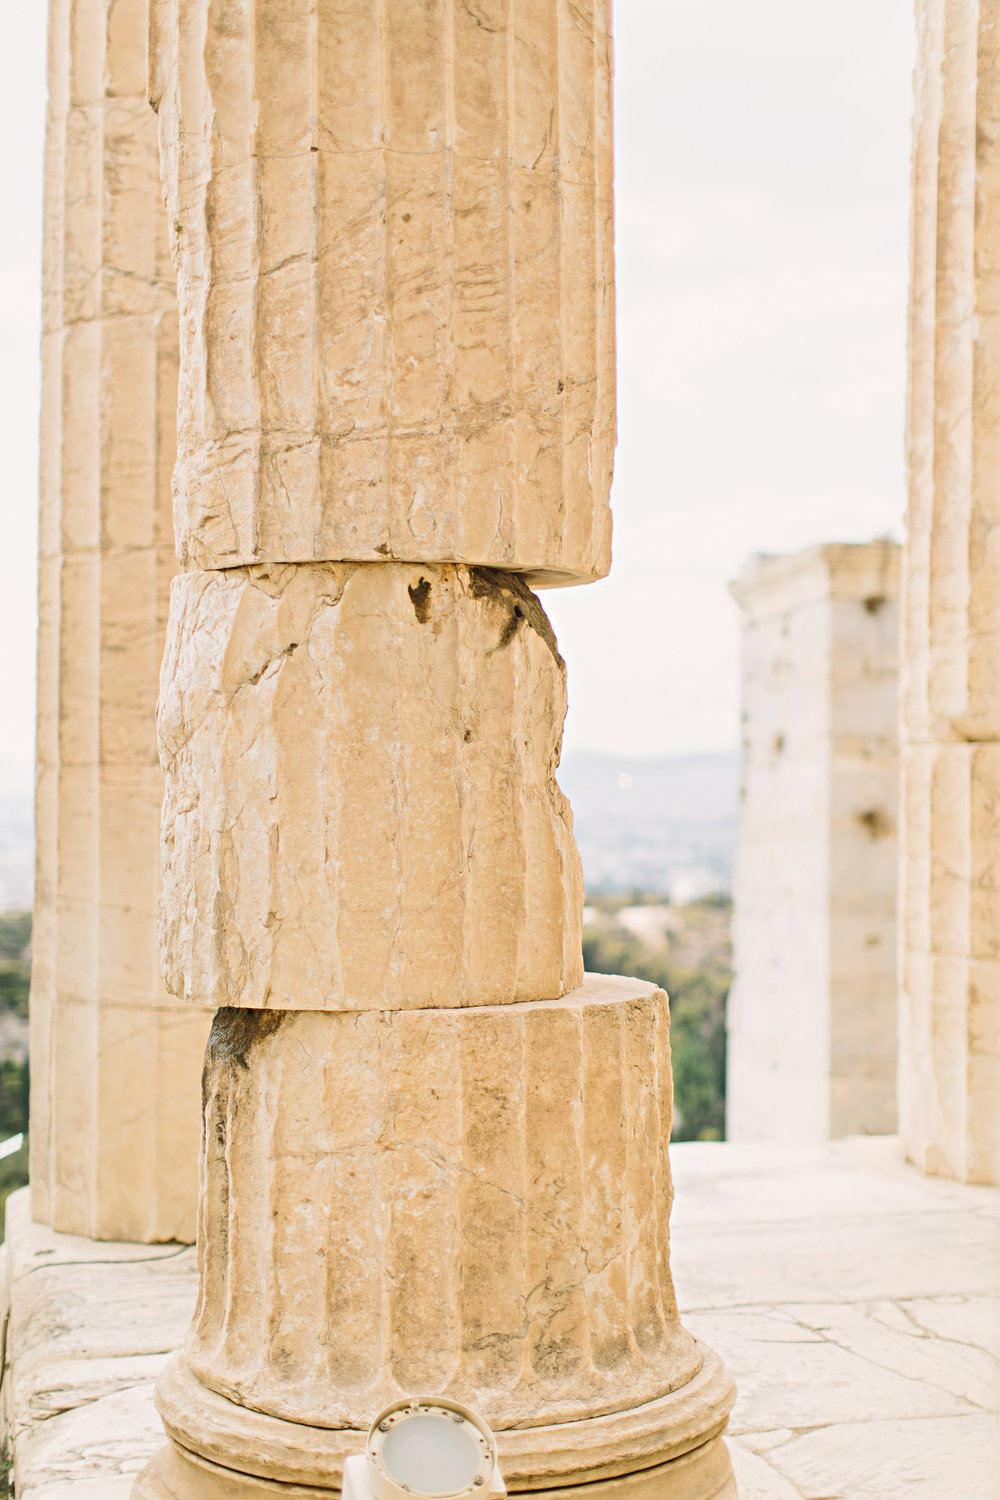 CindyGiovagnoli_Athens_Greece_travel_photographer-056.jpg